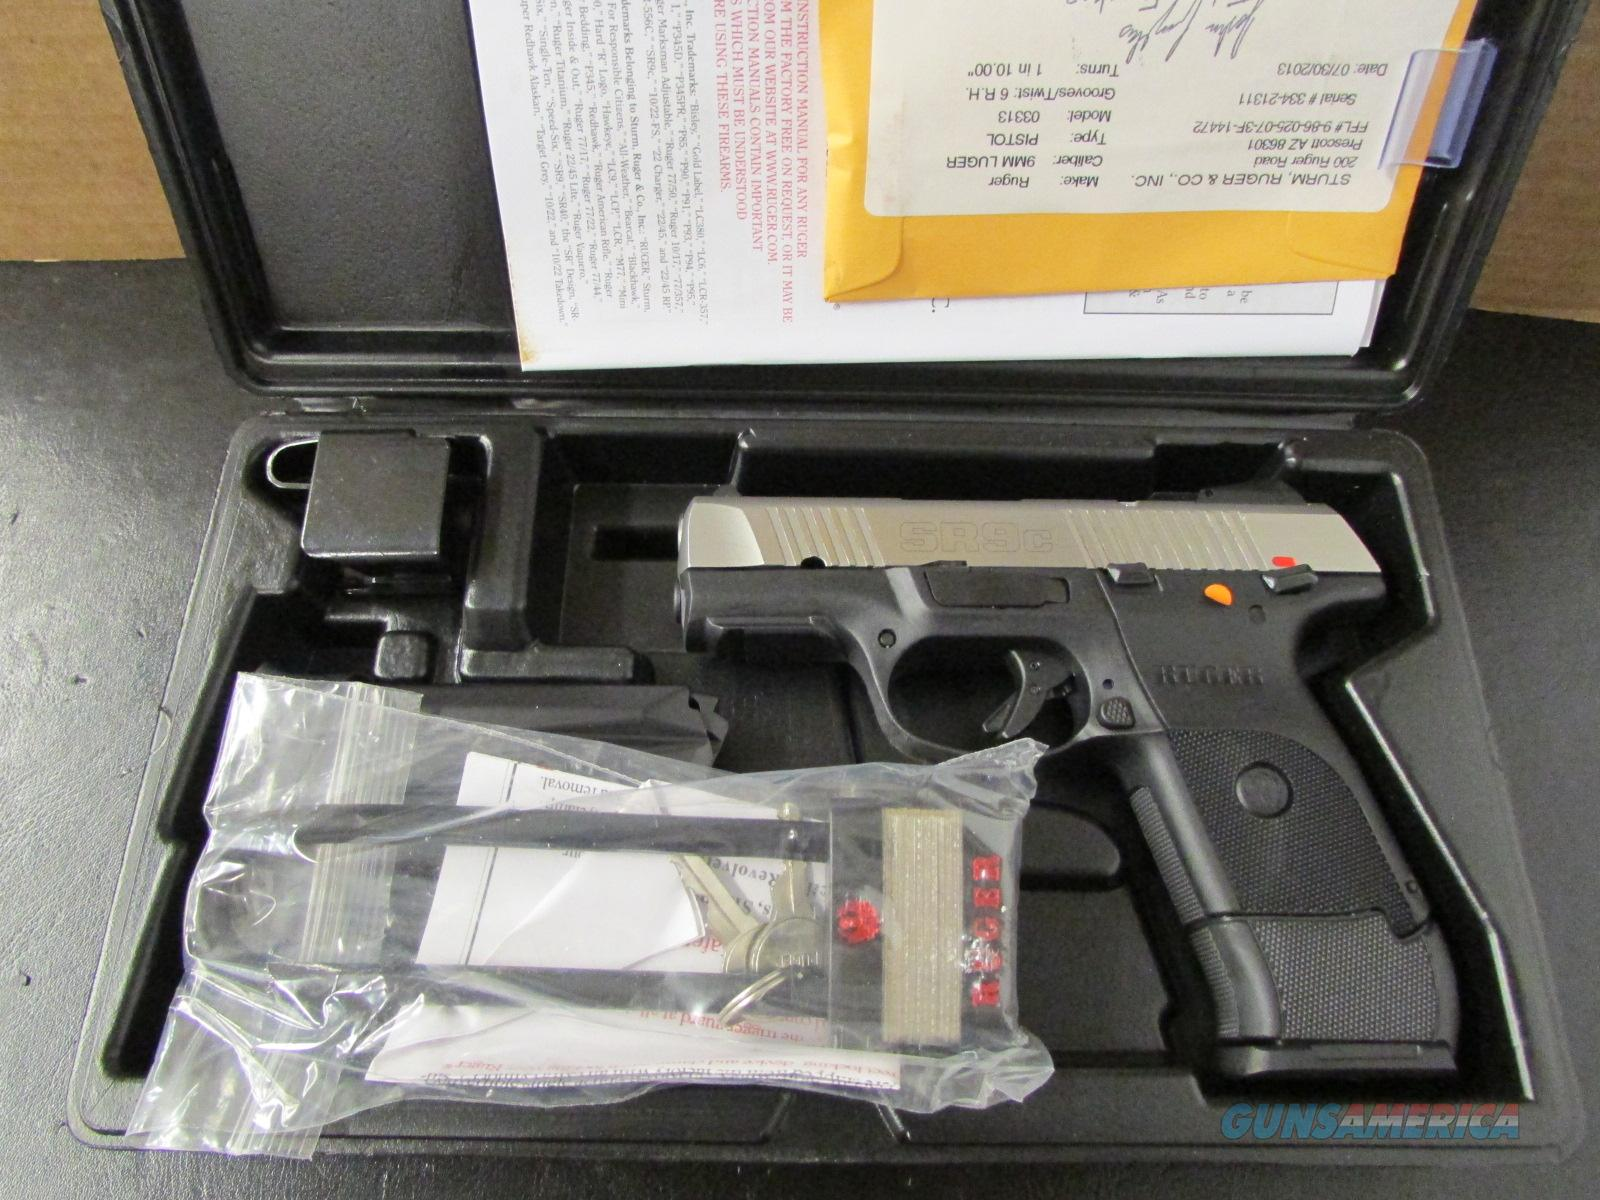 Ruger Stainless SR9c Compact 17 Round 9mm Luger/Para. 3313  Guns > Pistols > Ruger Semi-Auto Pistols > SR Family > SR9C